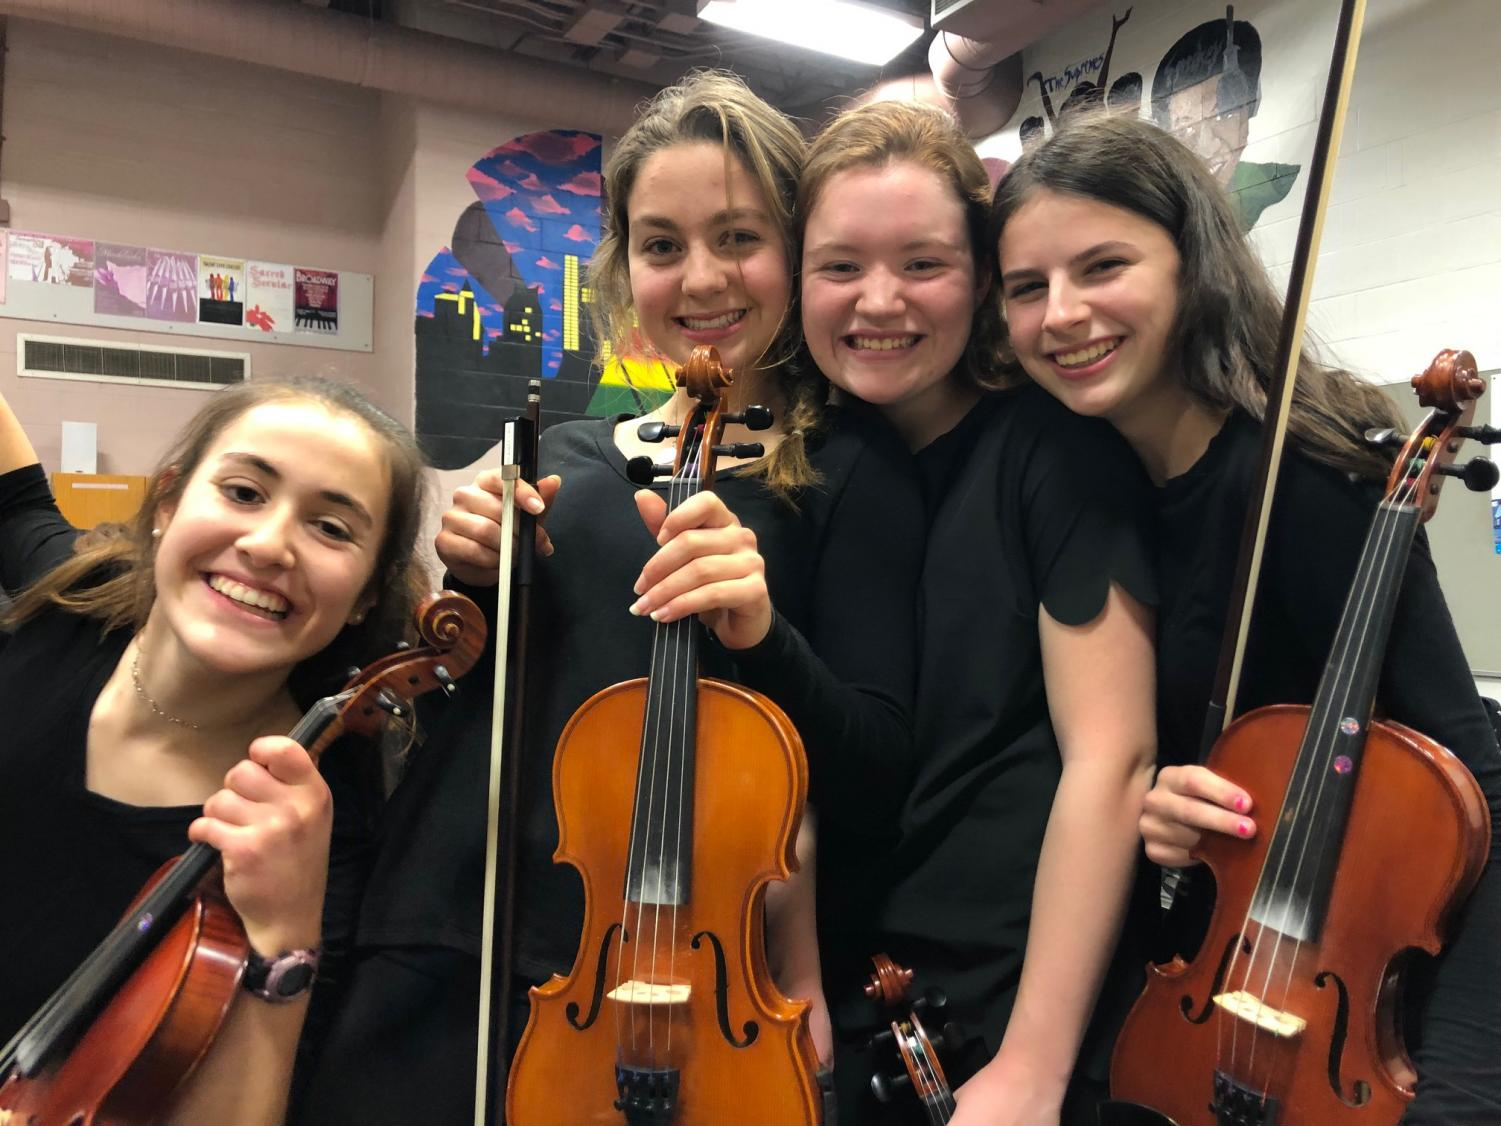 Taken by Delaney Coppola From left: sophomores Elle Cavanaugh, Katy Mulflur, Maddie Aylward, and Caroline Bastardi smile for a photo before performing onstage.